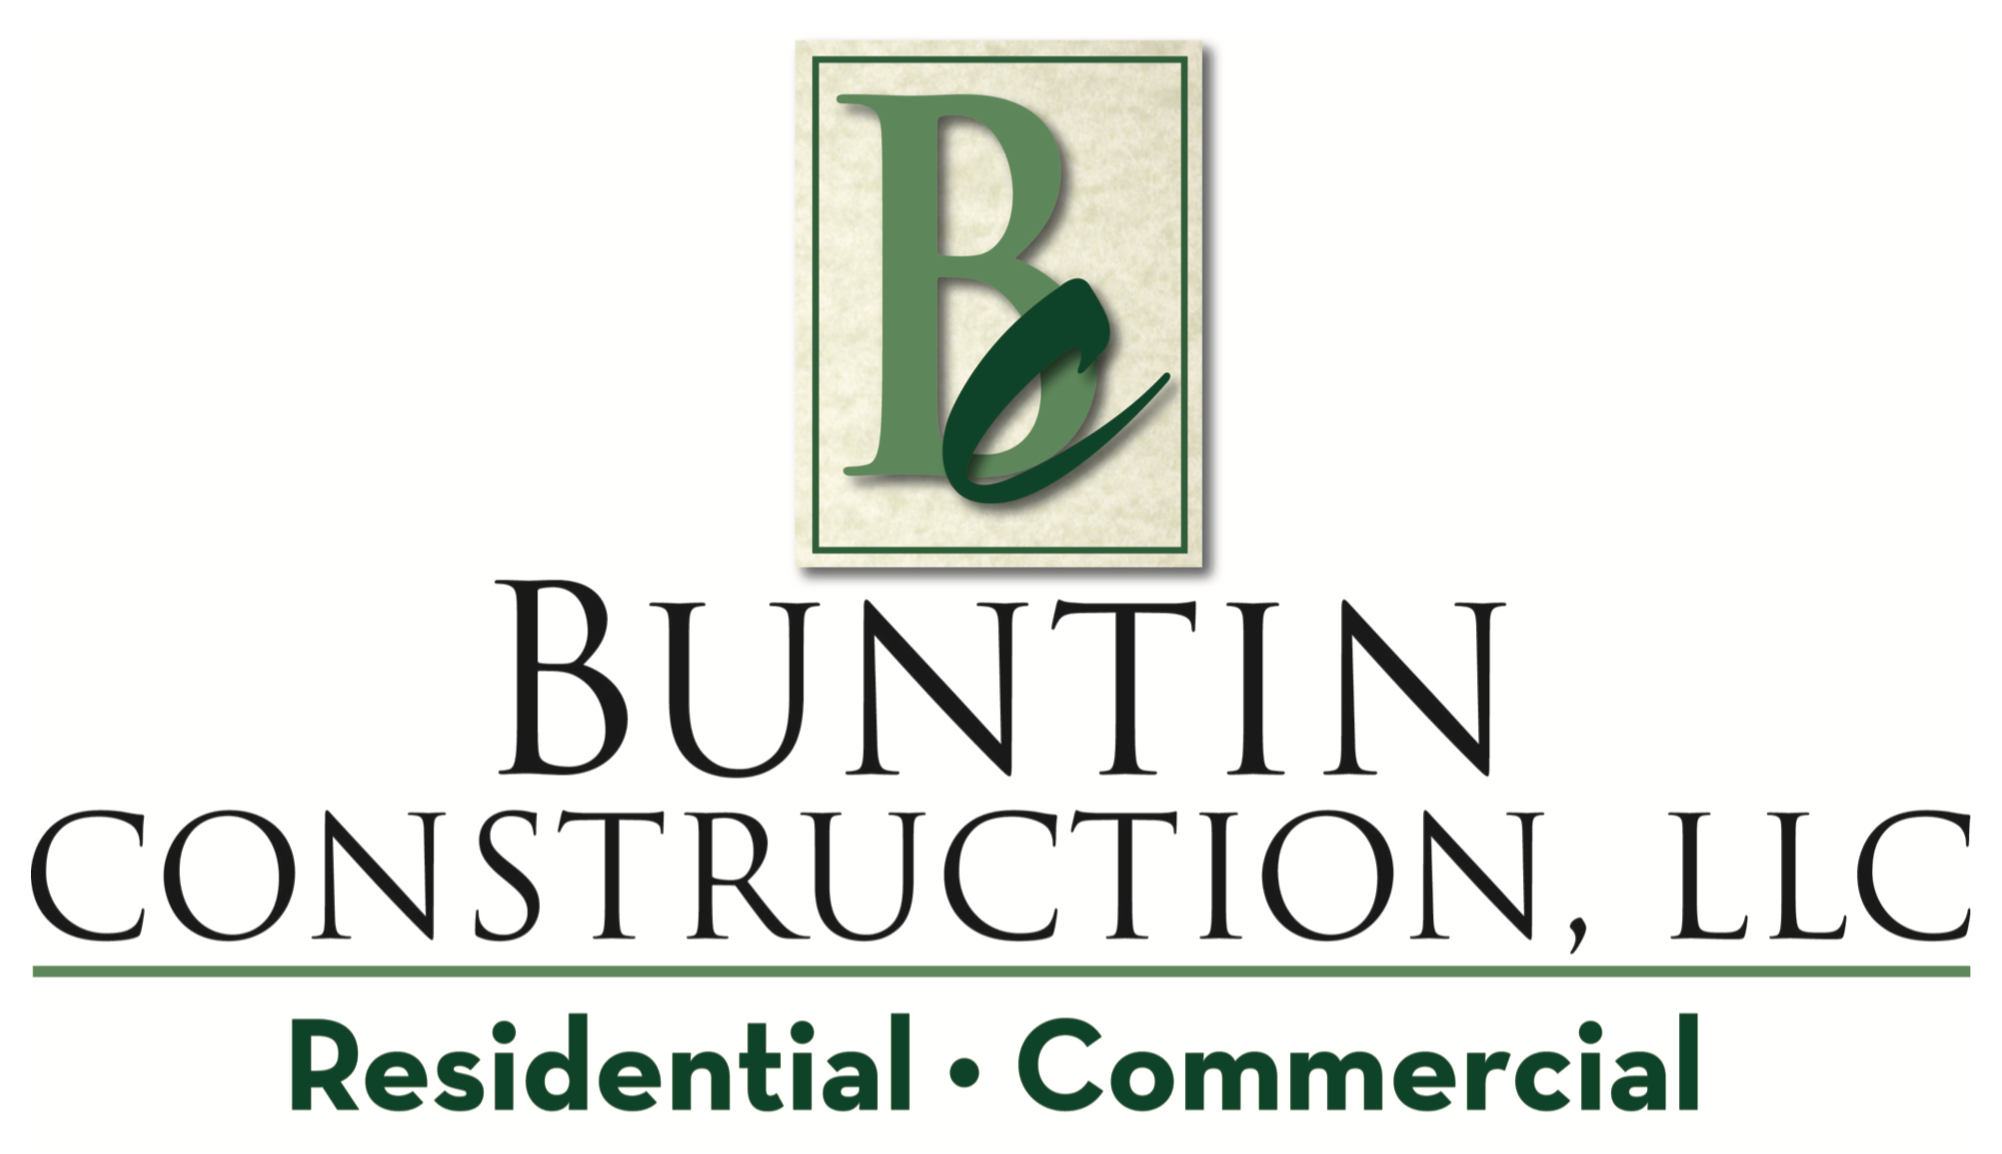 Buntin Construction - Commercial, Residential, Industrial Builder in Southern Oregon